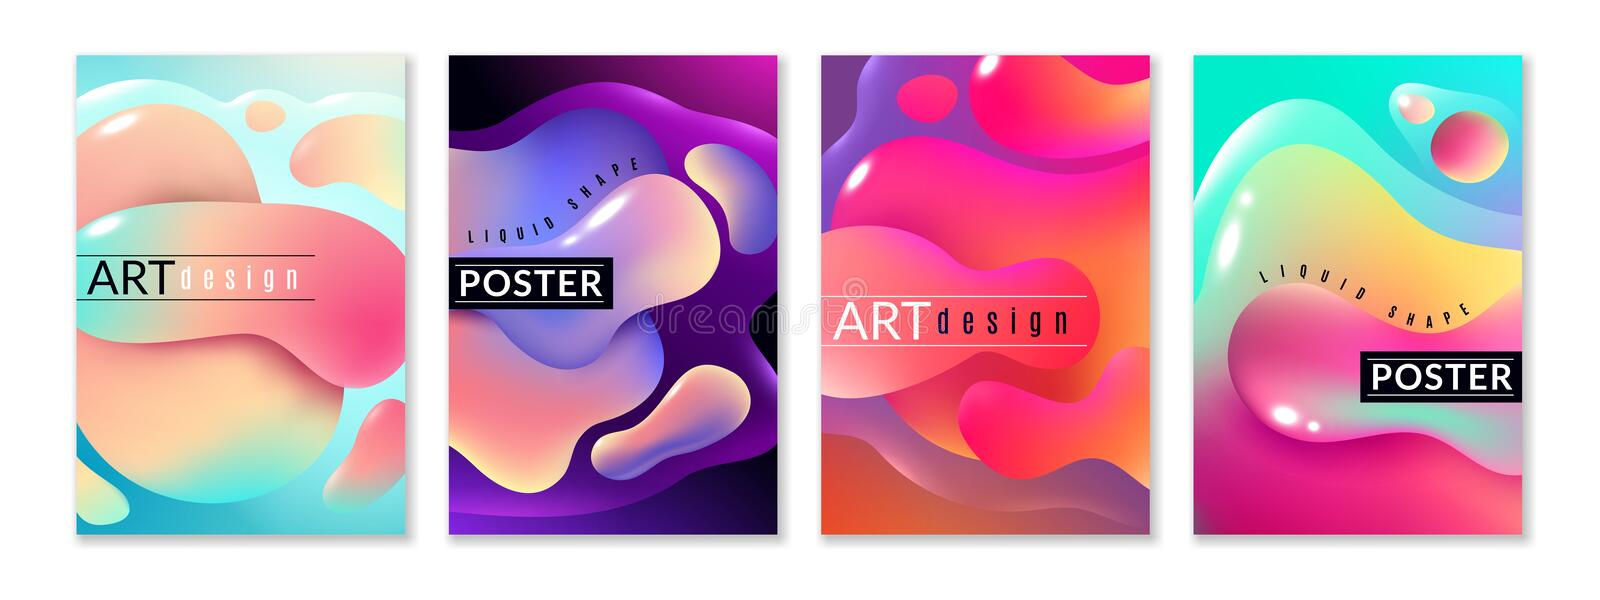 Liquid shape poster. Abstract fluid free shapes color flux minimal paint spots dynamic forms graphic modern background royalty free illustration